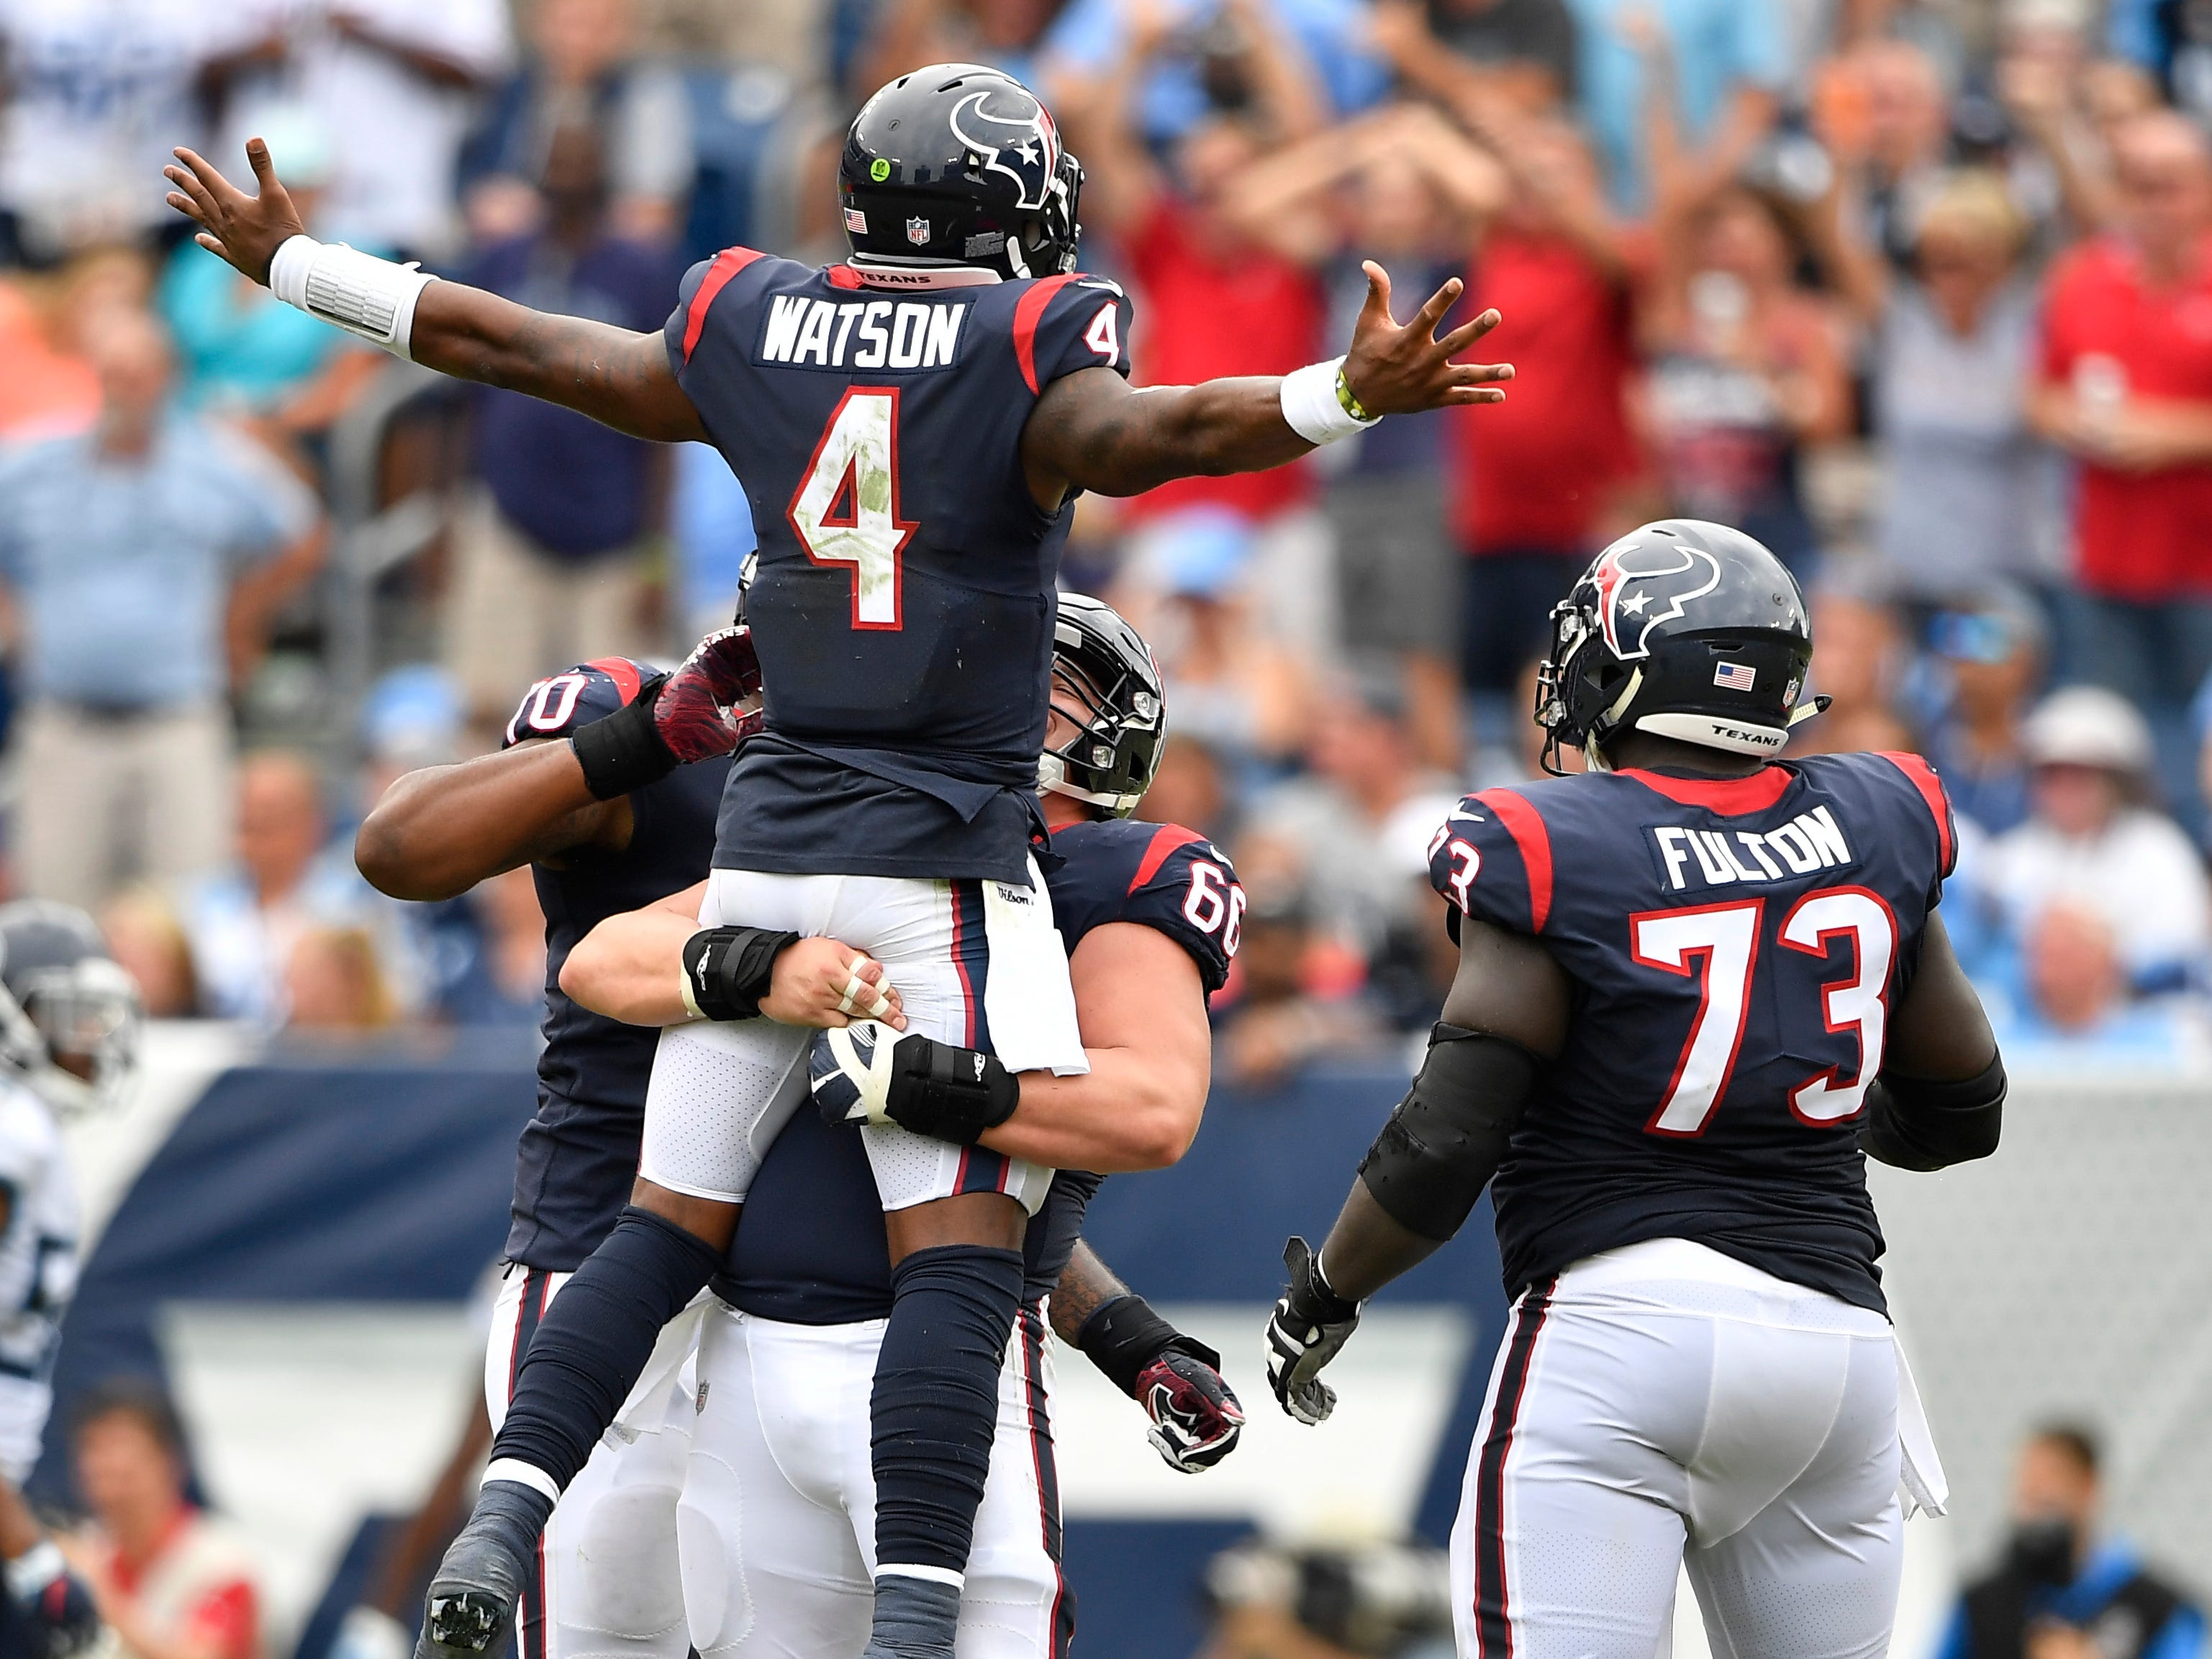 Texans quarterback Deshaun Watson (4) celebrates his touchdown pass with Texans center Nick Martin (66) in the fourth quarter at Nissan Stadium Sunday, Sept. 16, 2018, in Nashville, Tenn.